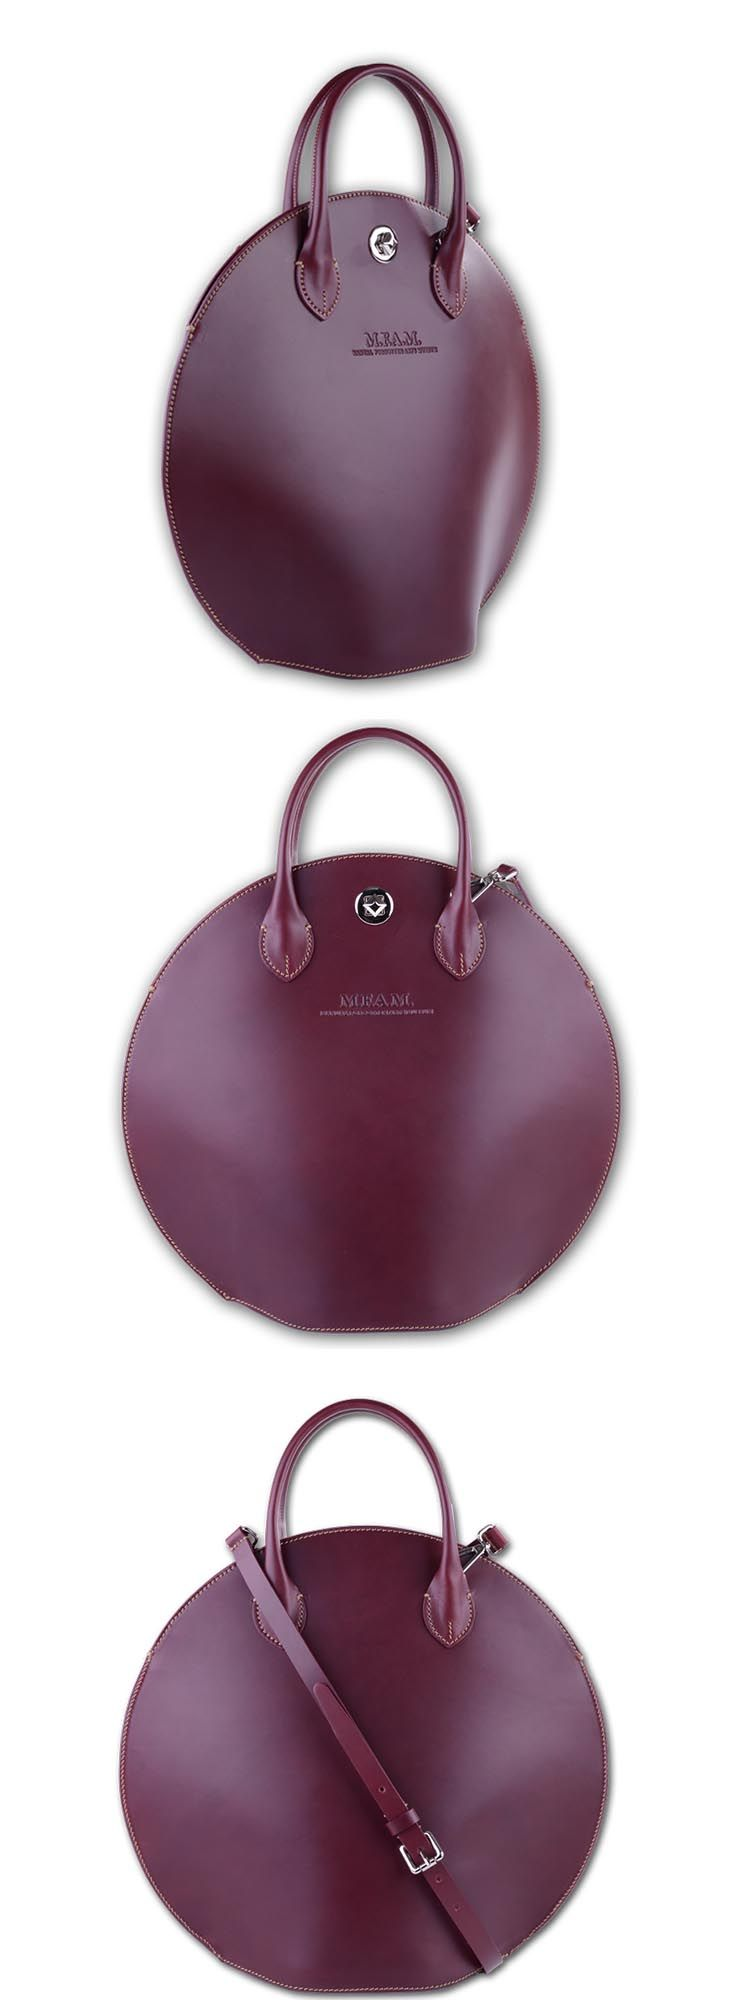 Manual Co handmade leather handbag. Made for women with style. For women who love fashion. More top quality handbags you can find on themanualco.com Handmade Handbags & Accessories - http://amzn.to/2ij5DXx